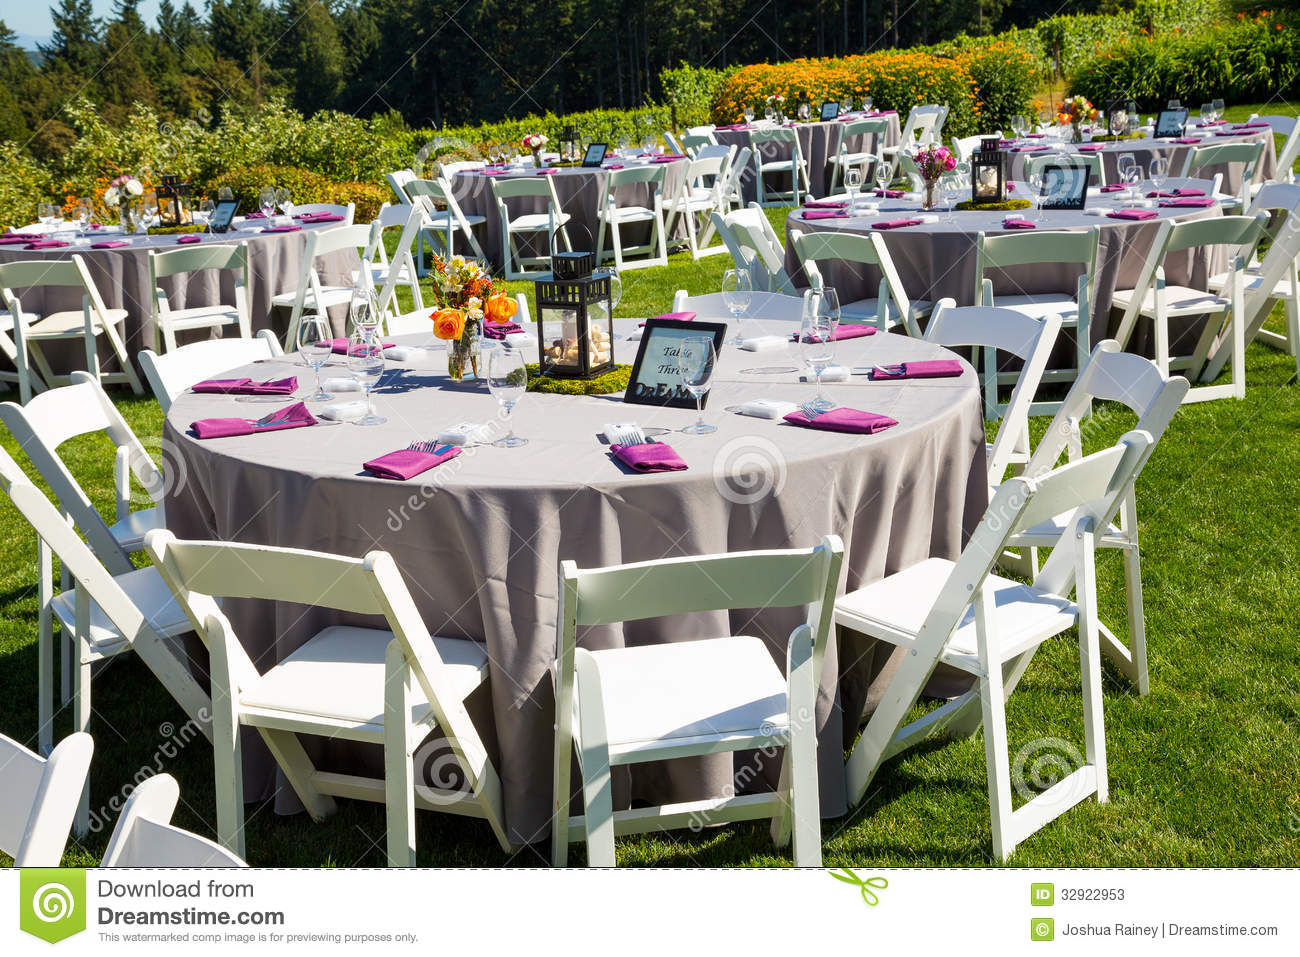 3 piece outdoor table and chairs posture support office wedding reception details stock image - image: 32922953